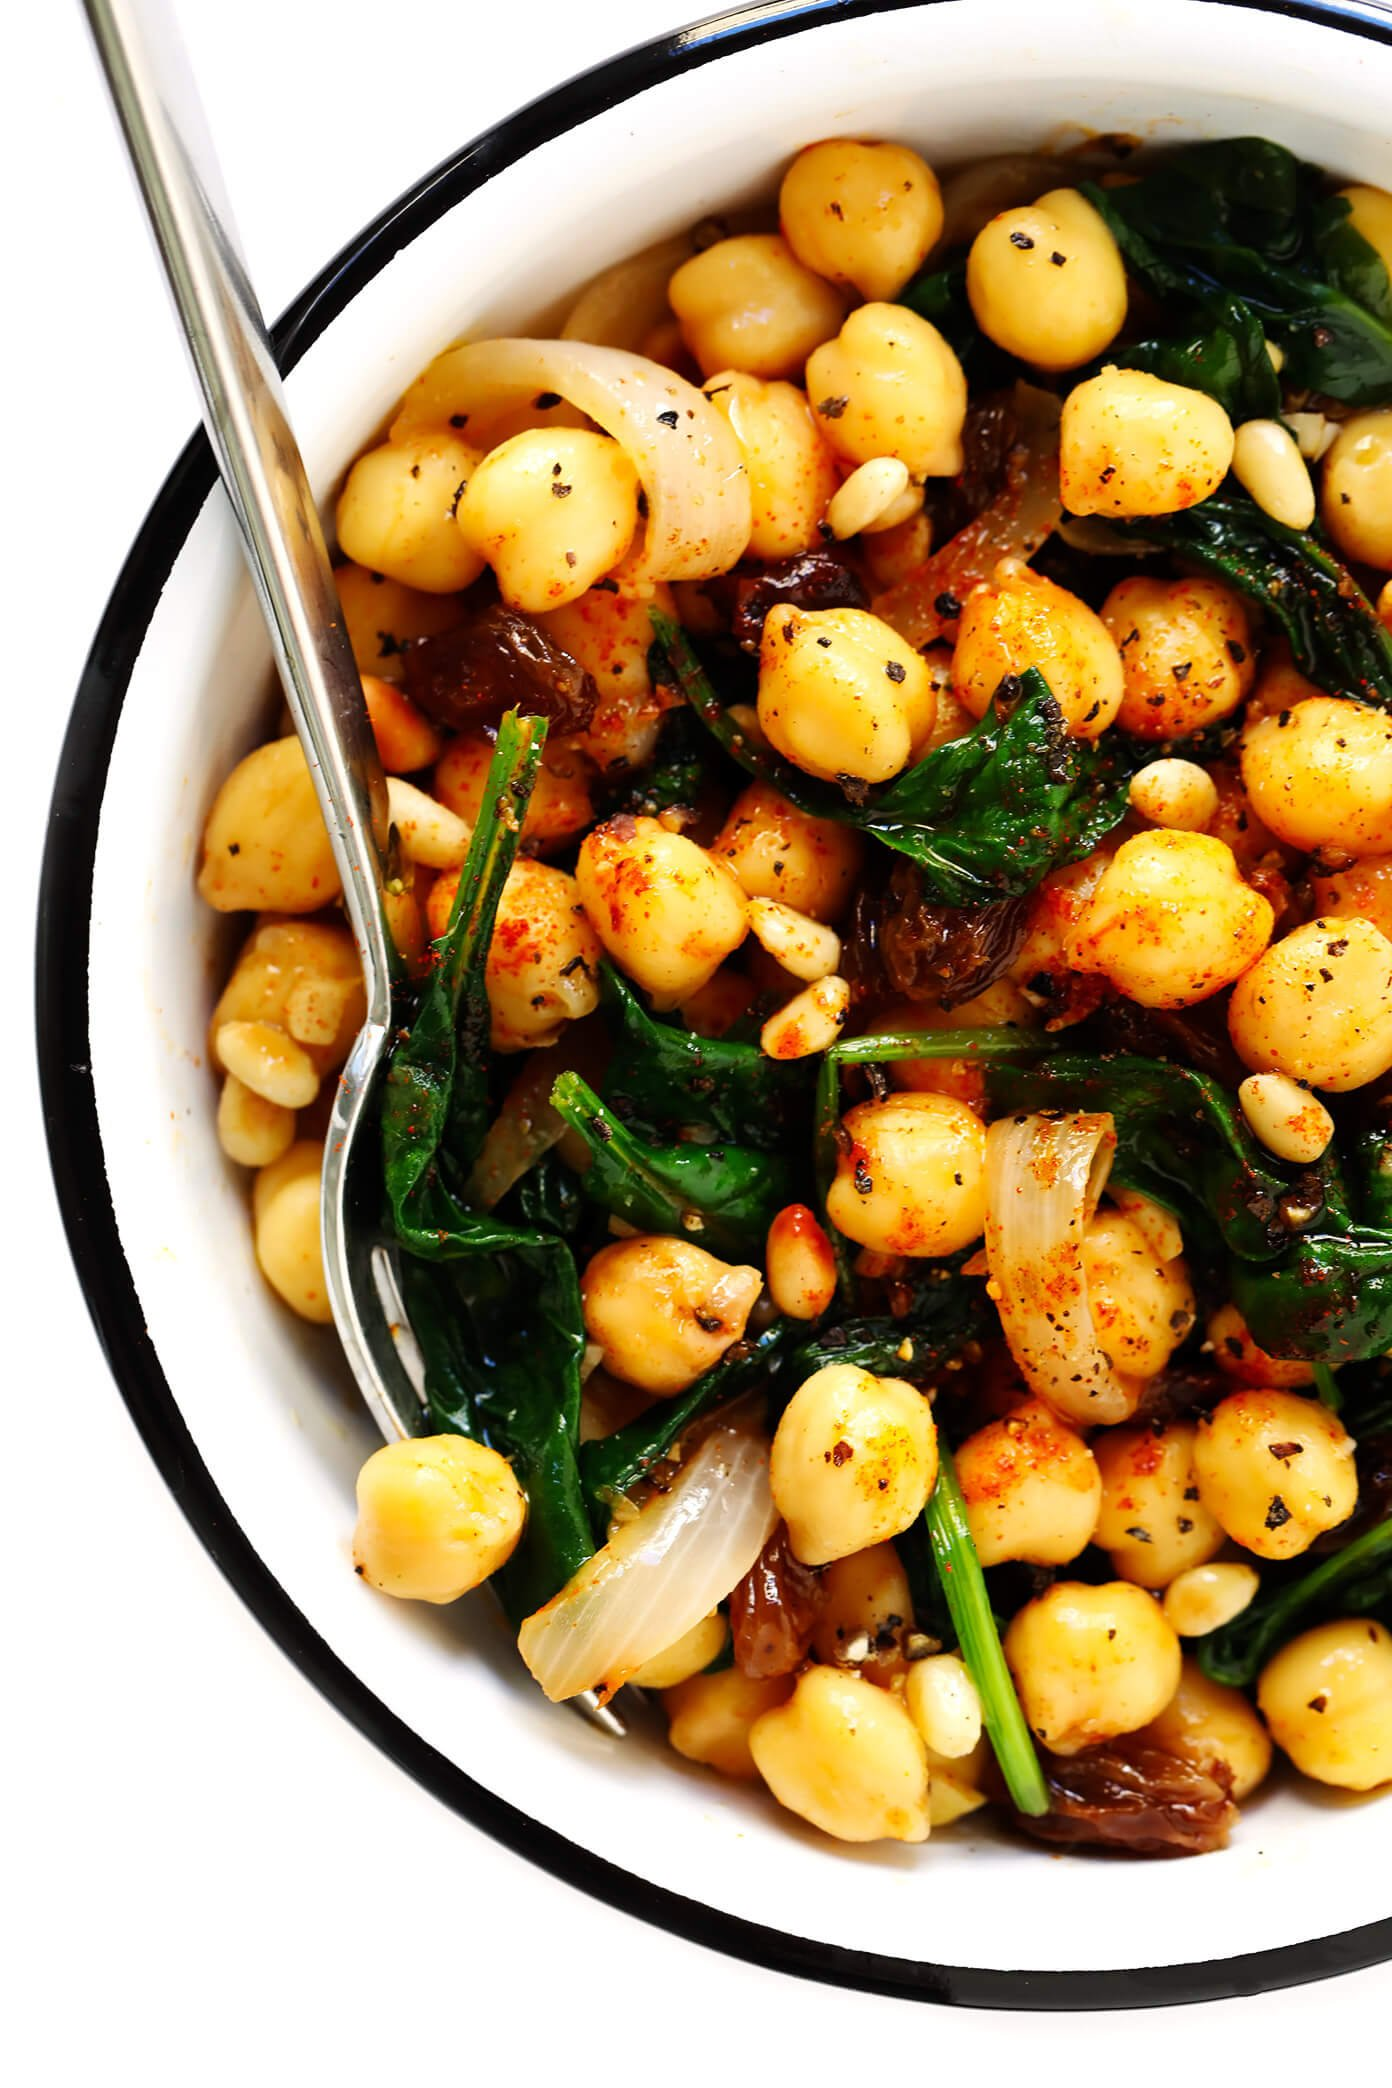 Spinach chickpeas and onions in a white bowl